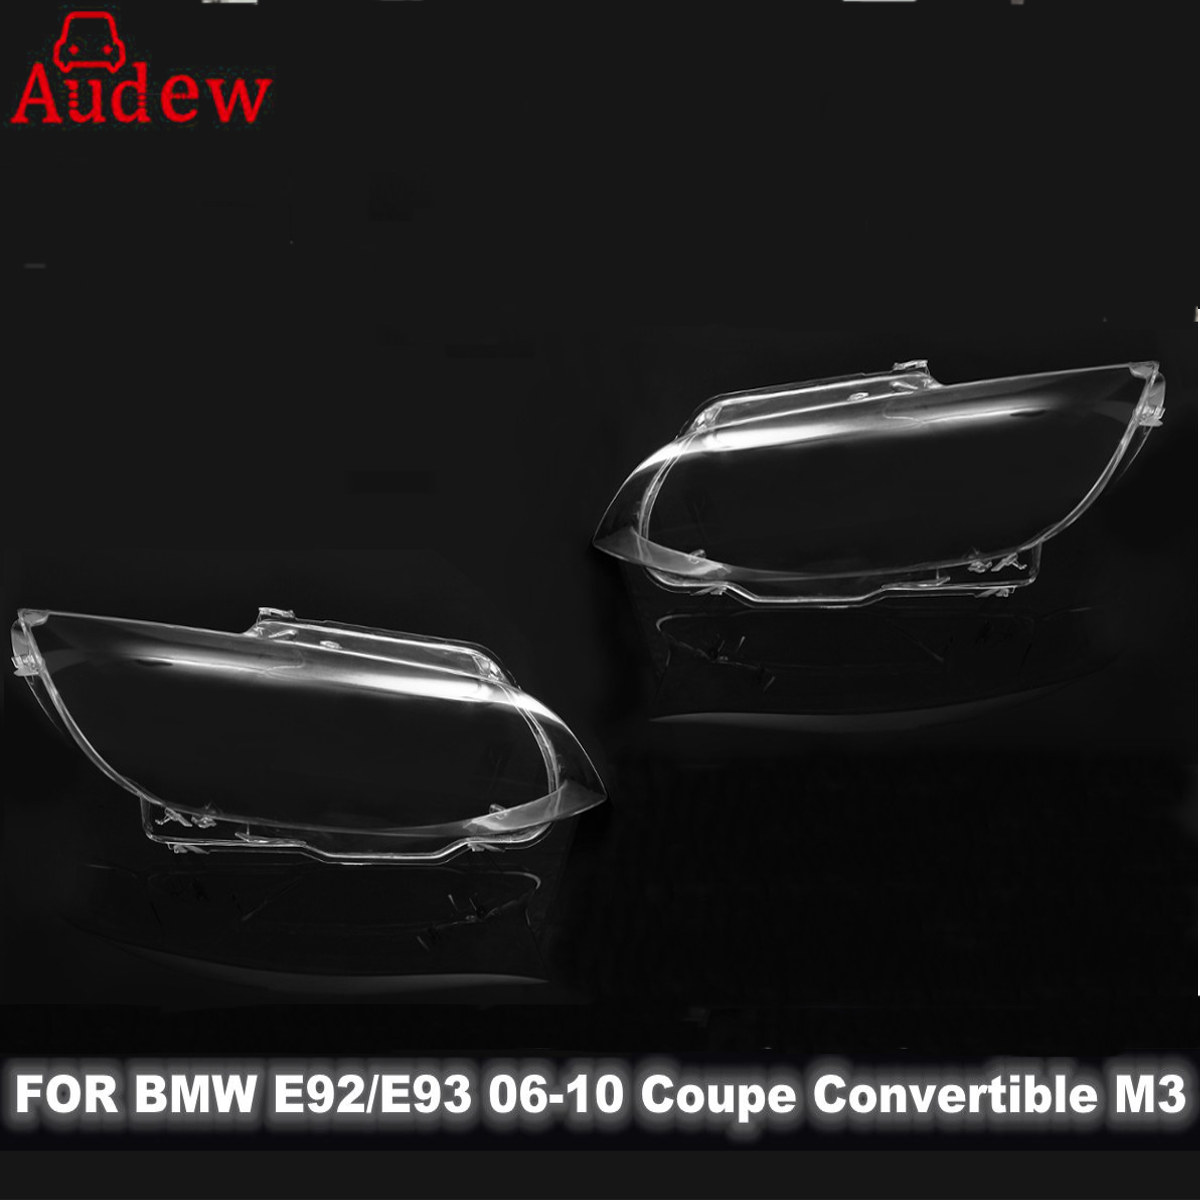 1Pcs Car Headlight Headlamp Lens Cover Left/Right for BMW E92 E93 Coupe Convertible M3 06-10 bmw m3 e30 coupe